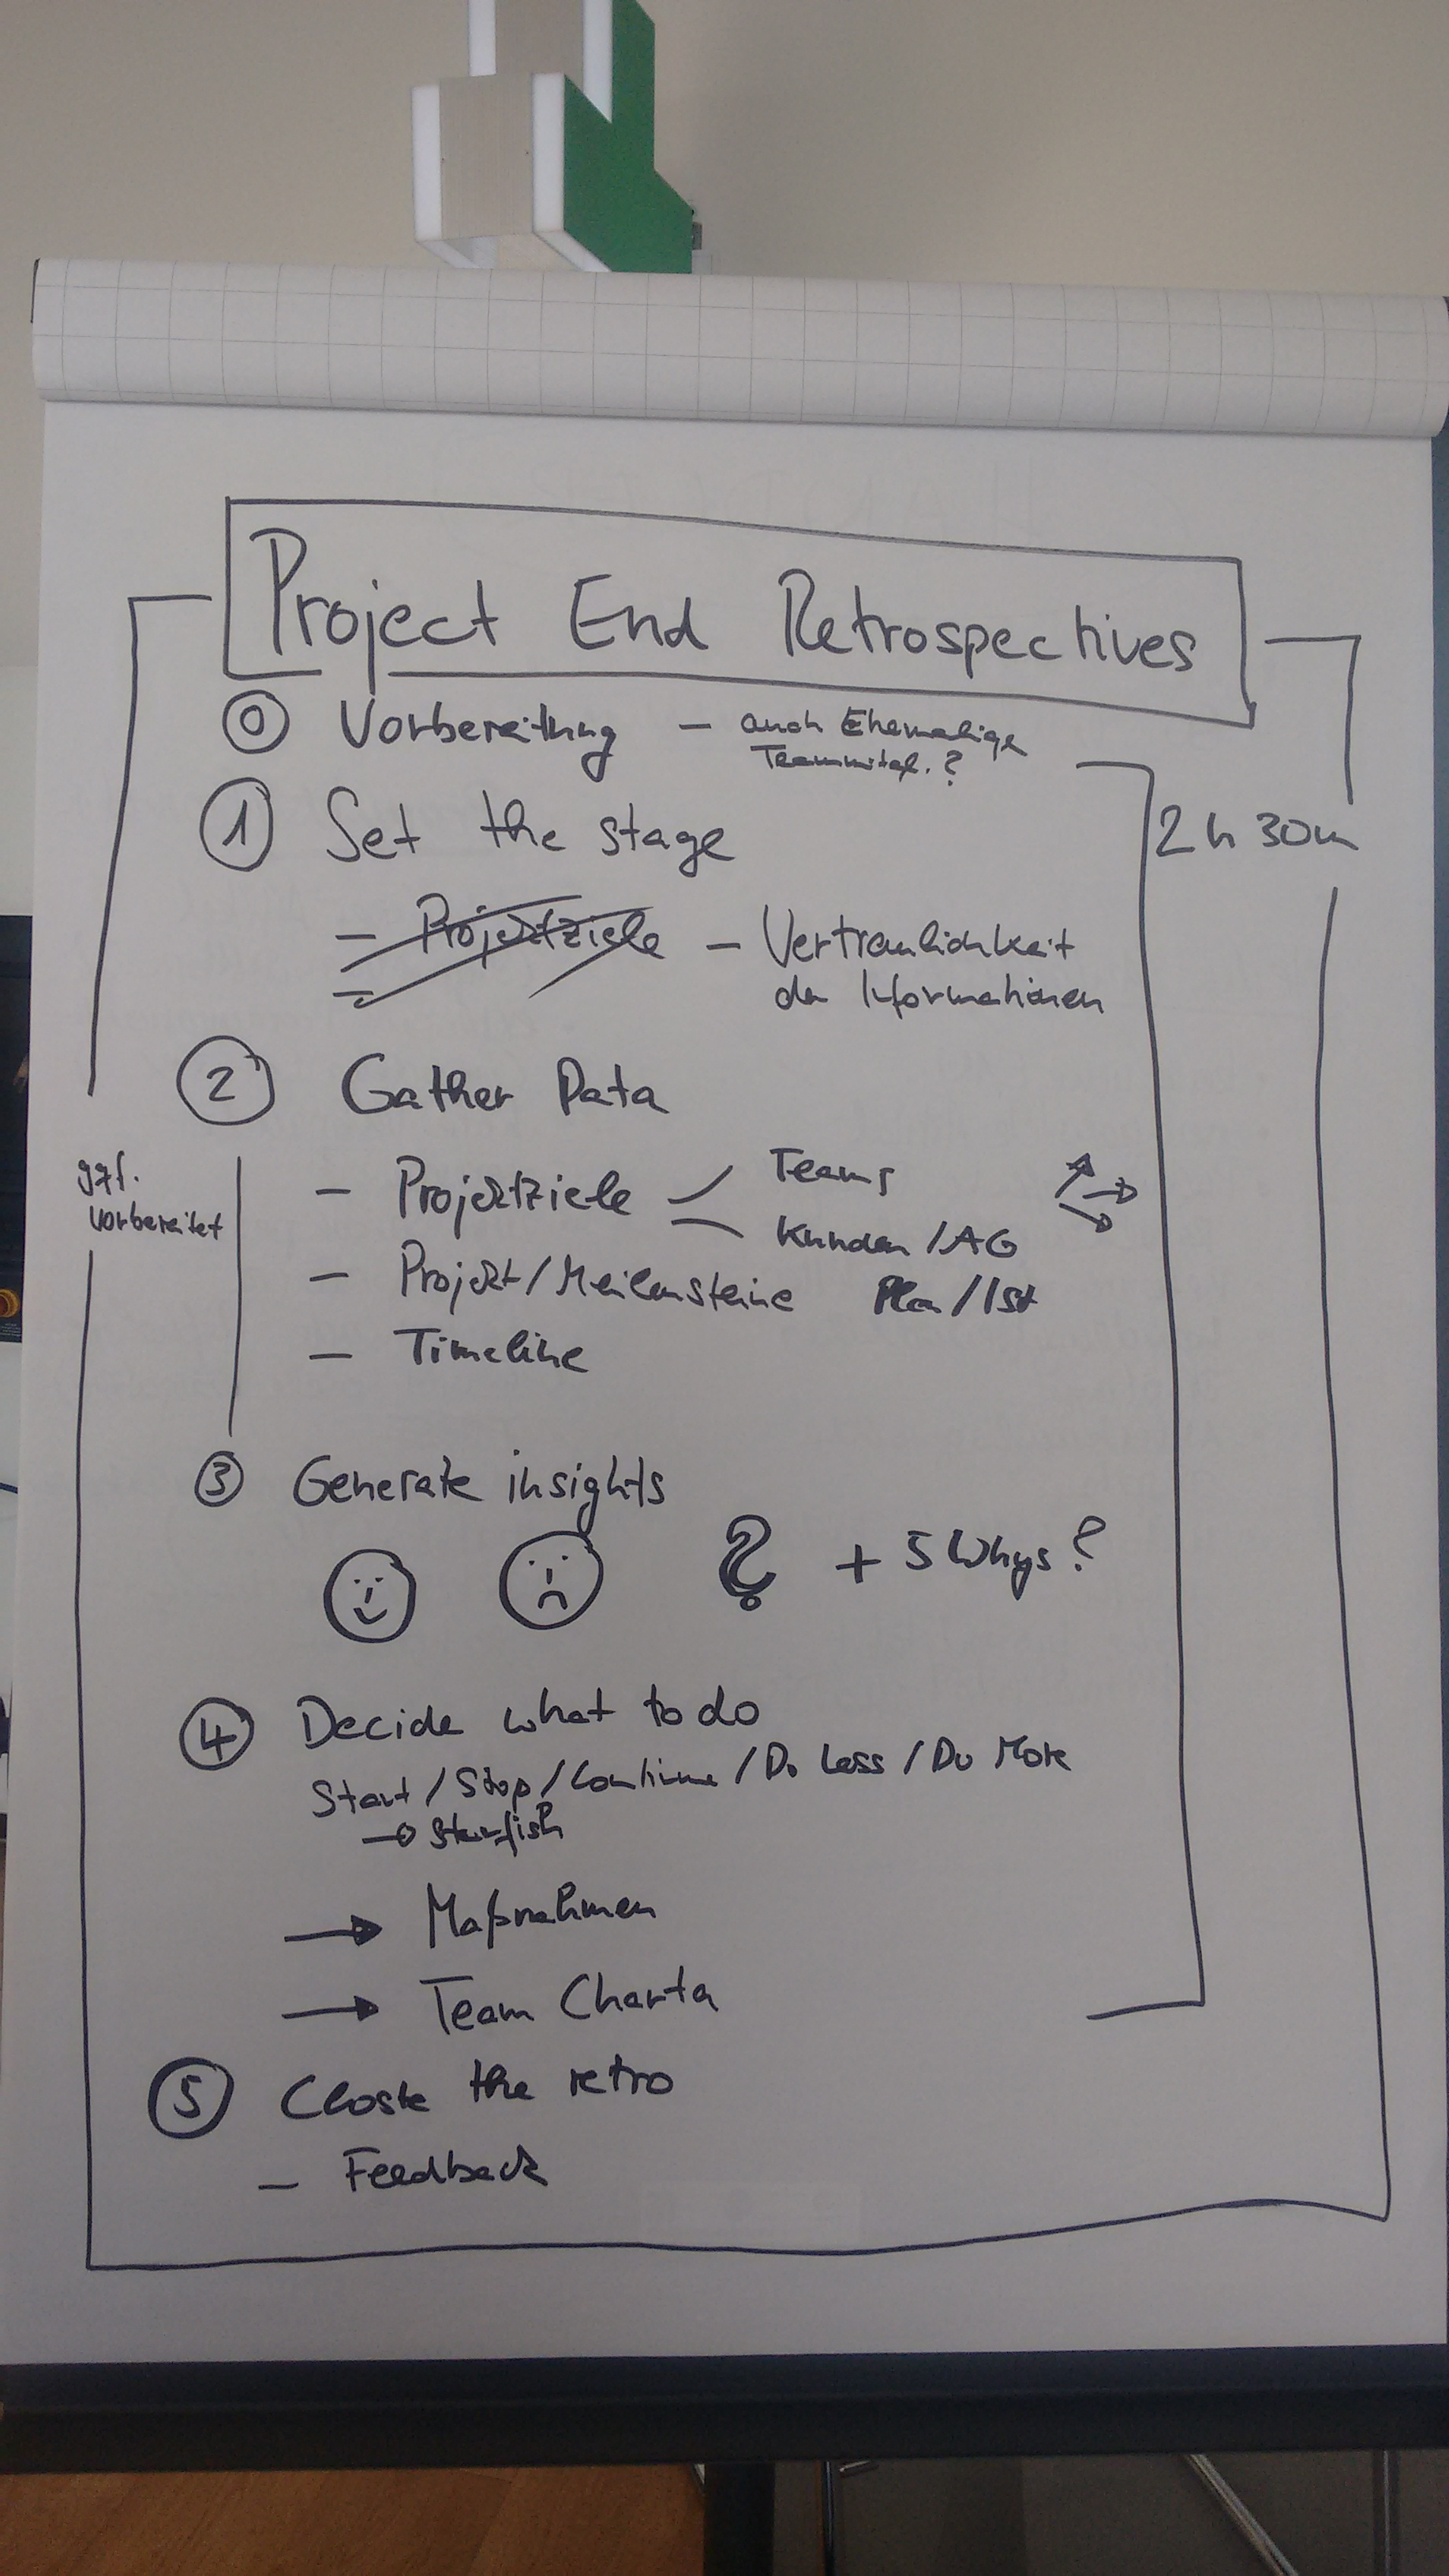 Project End Retrospective Flipchart, Agile Cologne 2017